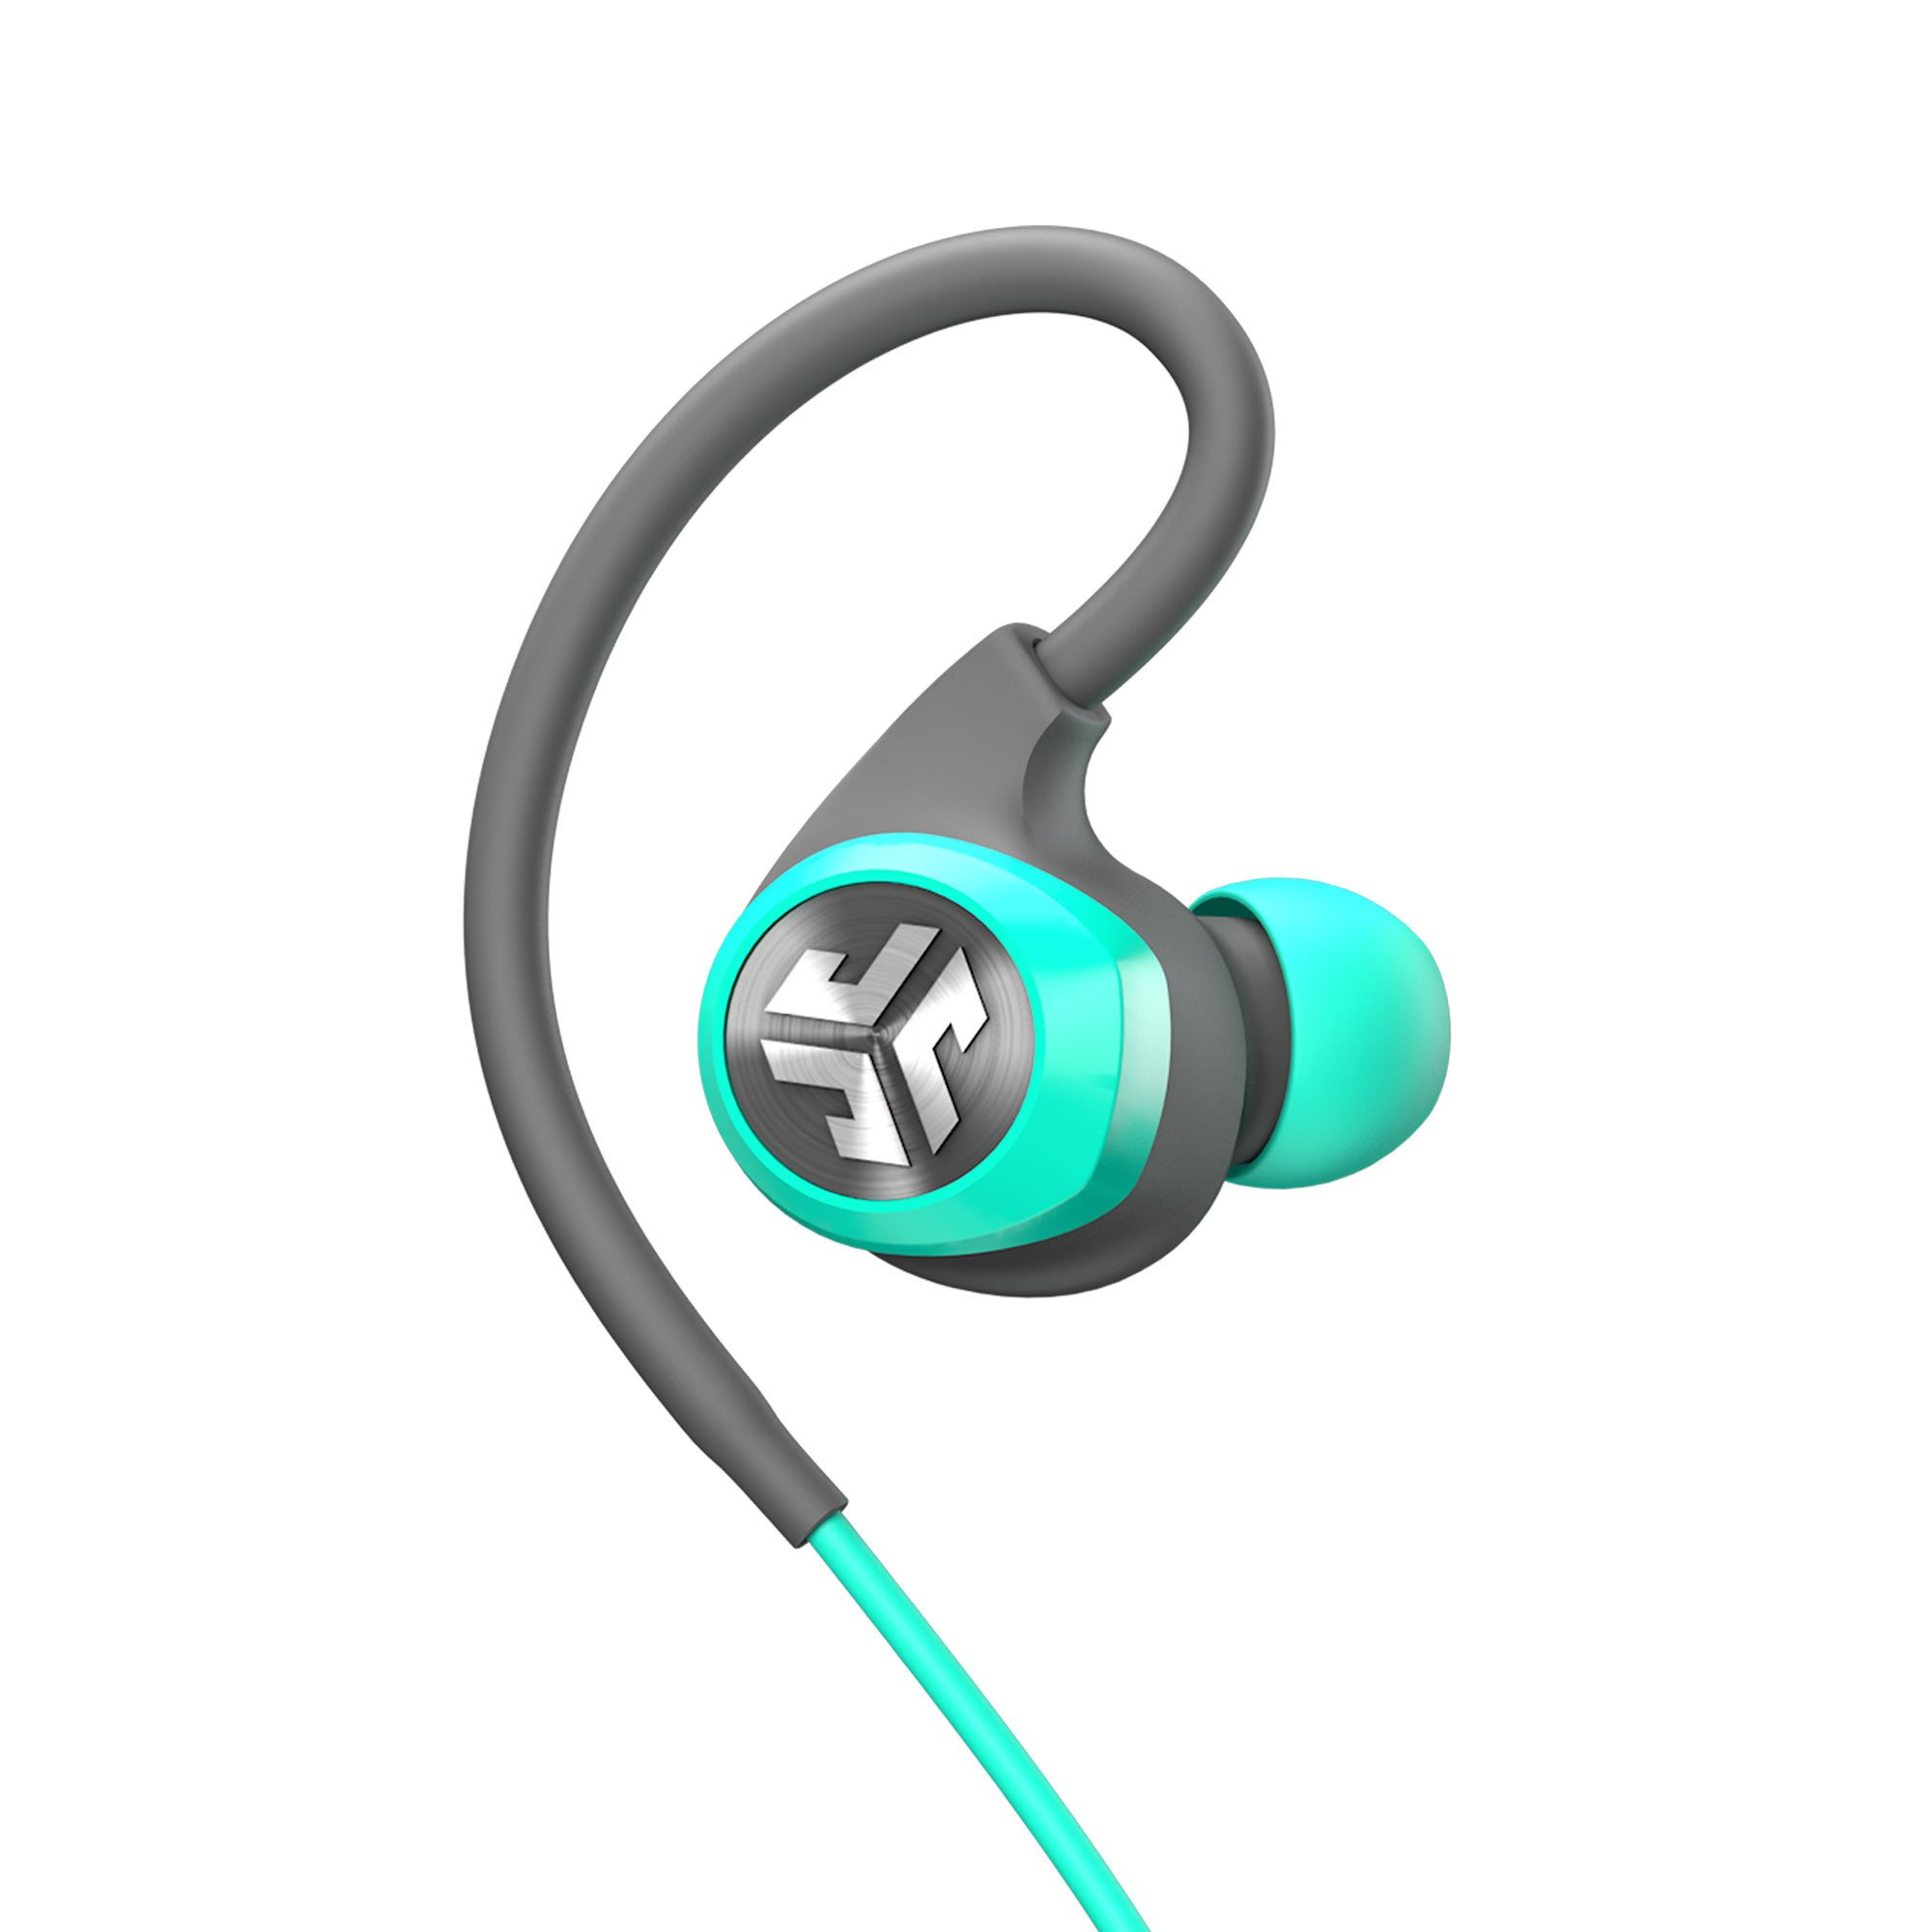 JLab Audio Epic2 Bluetooth 4.0 Wireless Sport Earbuds - Teal - GUARANTEED fitness, waterproof IPX5 rated, skip-free sound, pristine high-performance 8mm sound drivers, 12 hr play time w/ microphone